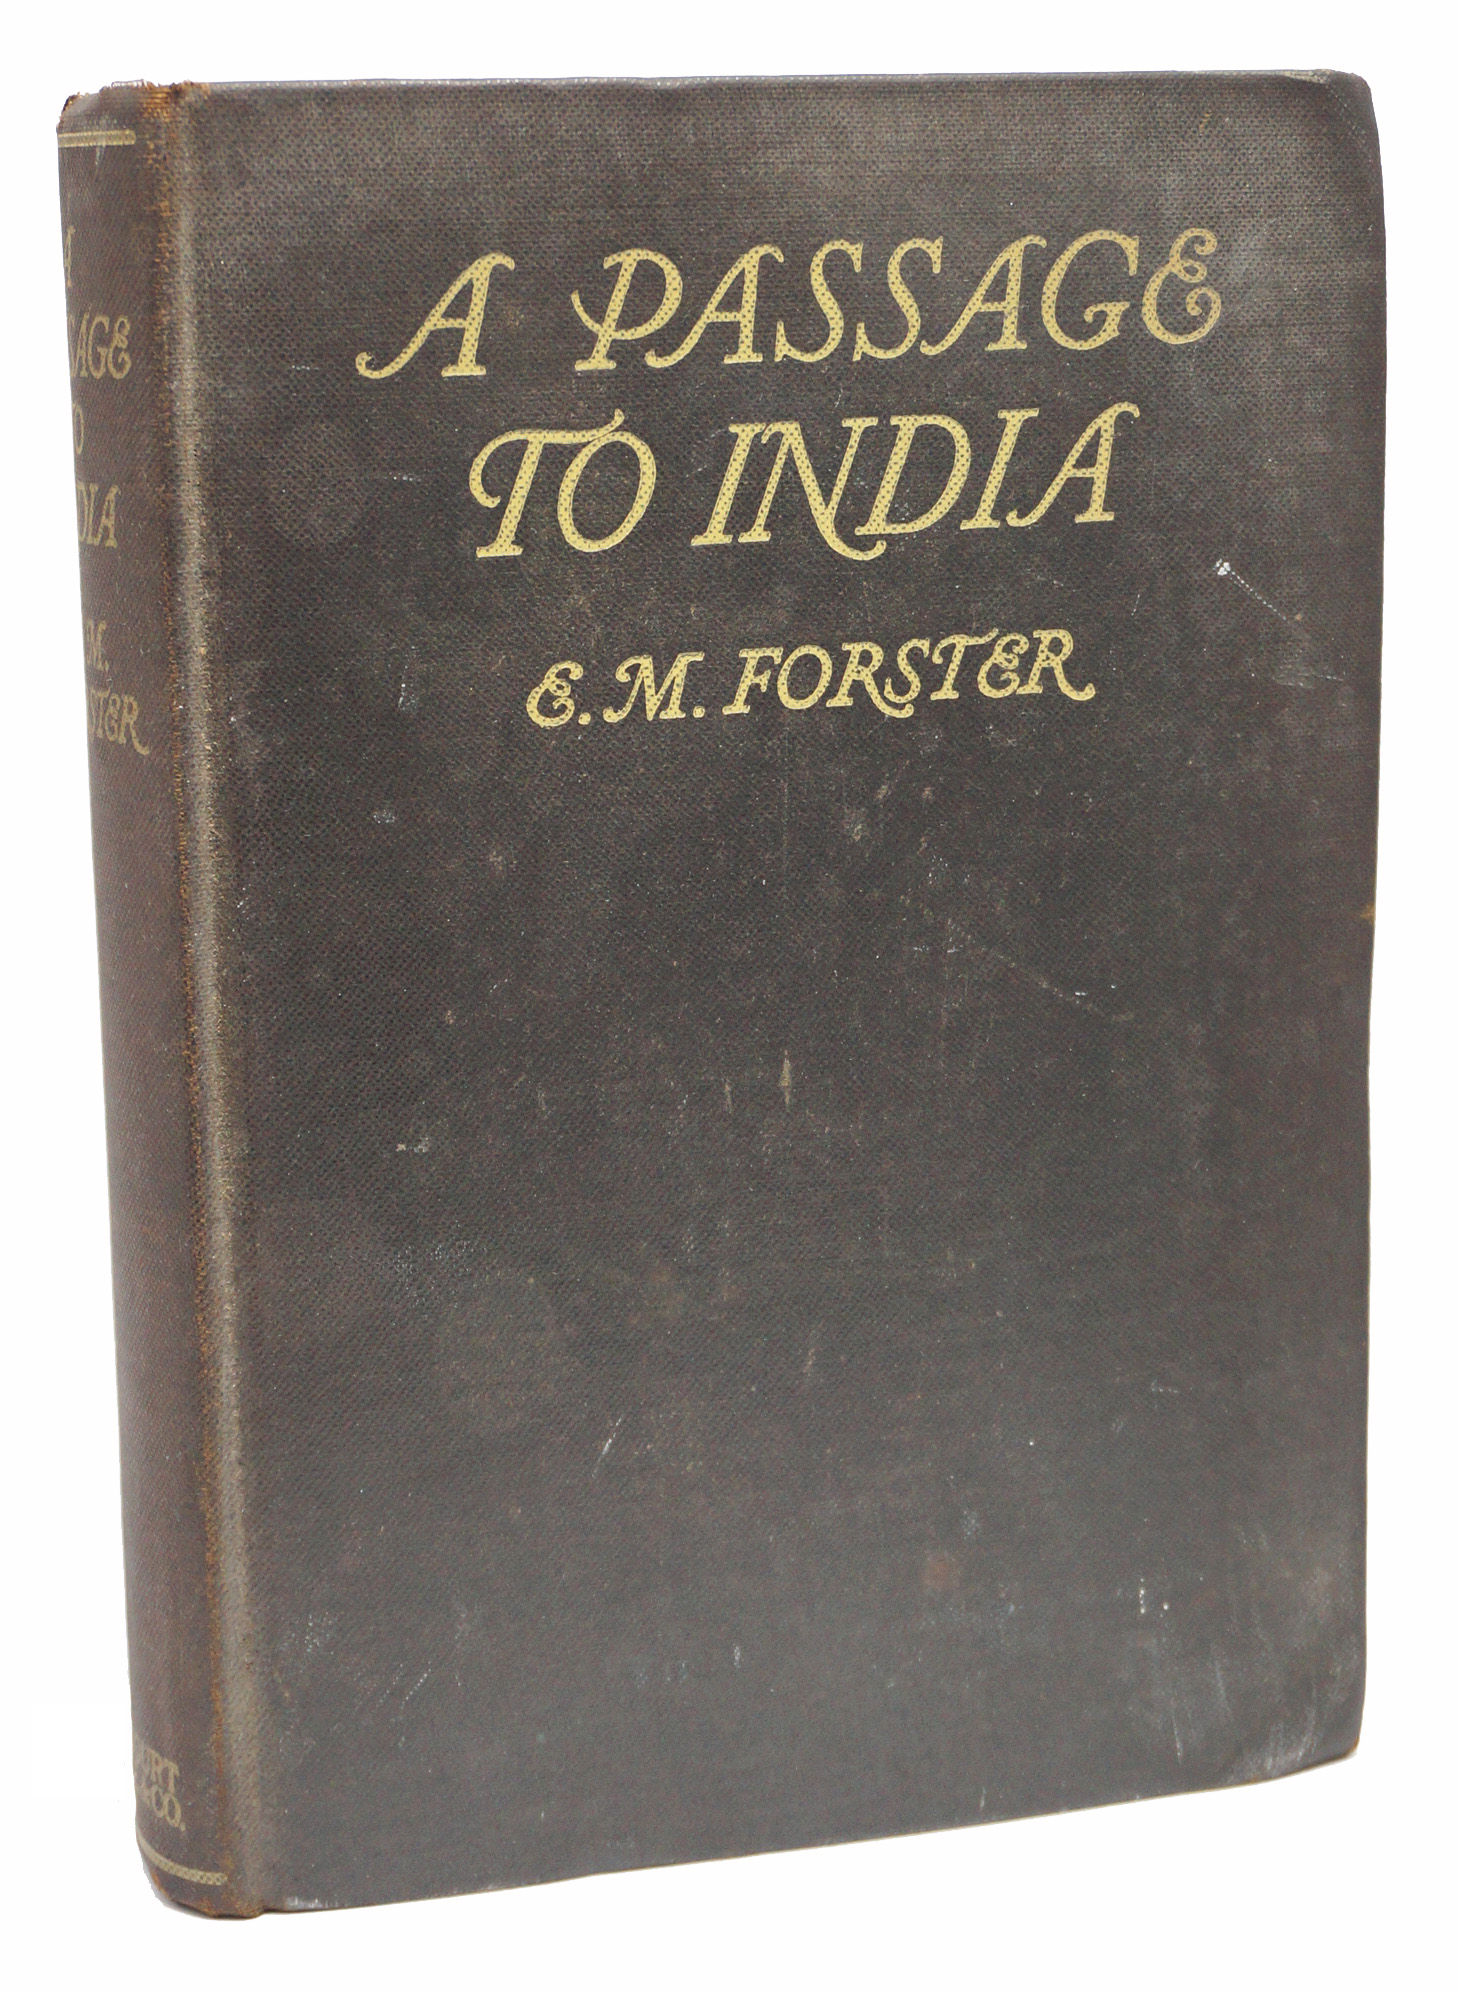 a justification of the title a passage to india by e m forster Essays and criticism on e m forster's a passage to india - critical evaluation forster took his title from the walt whitman poem by the same name, an odd choice, since whitman's vision is of the total unity of all people while in forster's novel the attempt to unite people fails at all levels the book is divided into three.